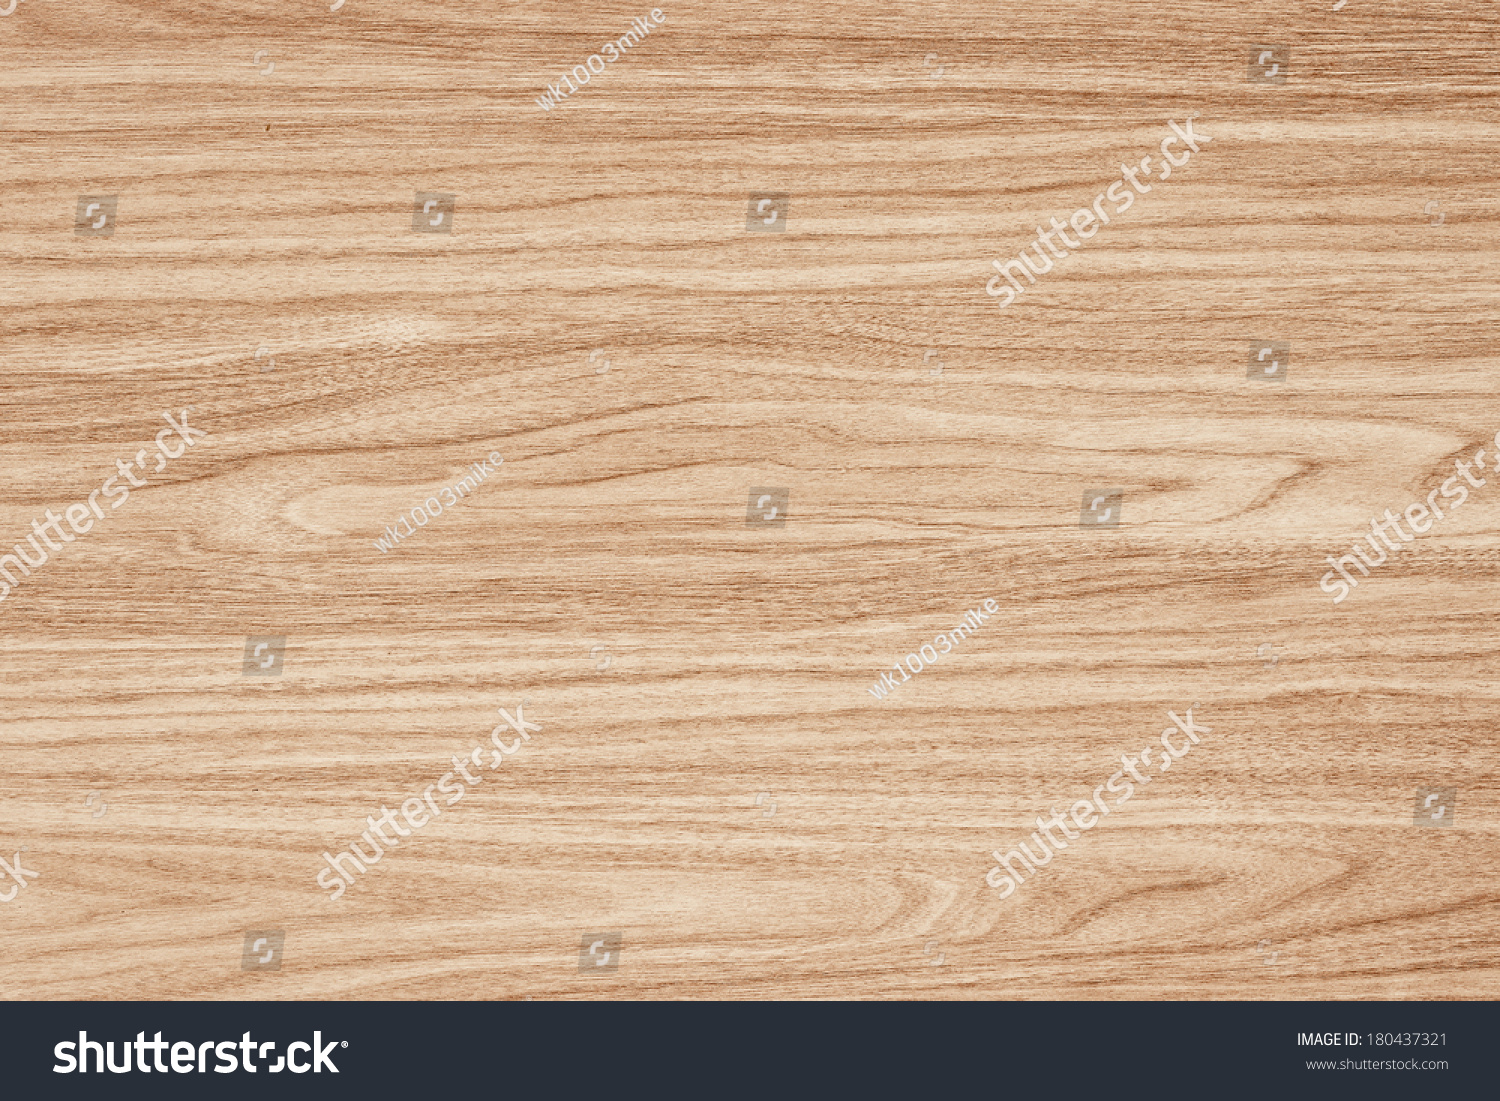 Wood Texture With Natural Wood Pattern Ez Canvas